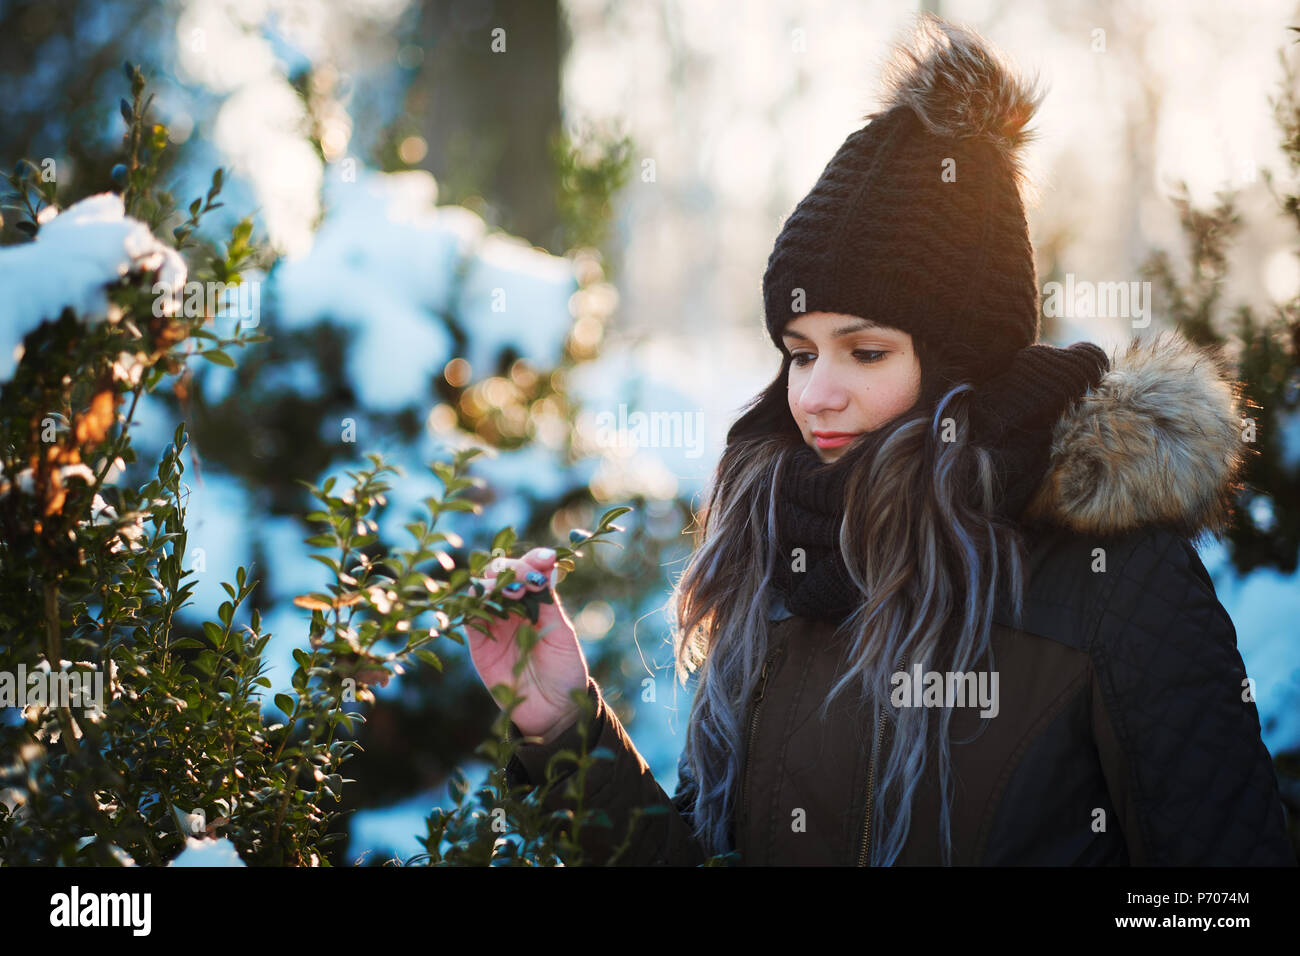 Young woman touch bush leaves outdoor winter portrait - Stock Image